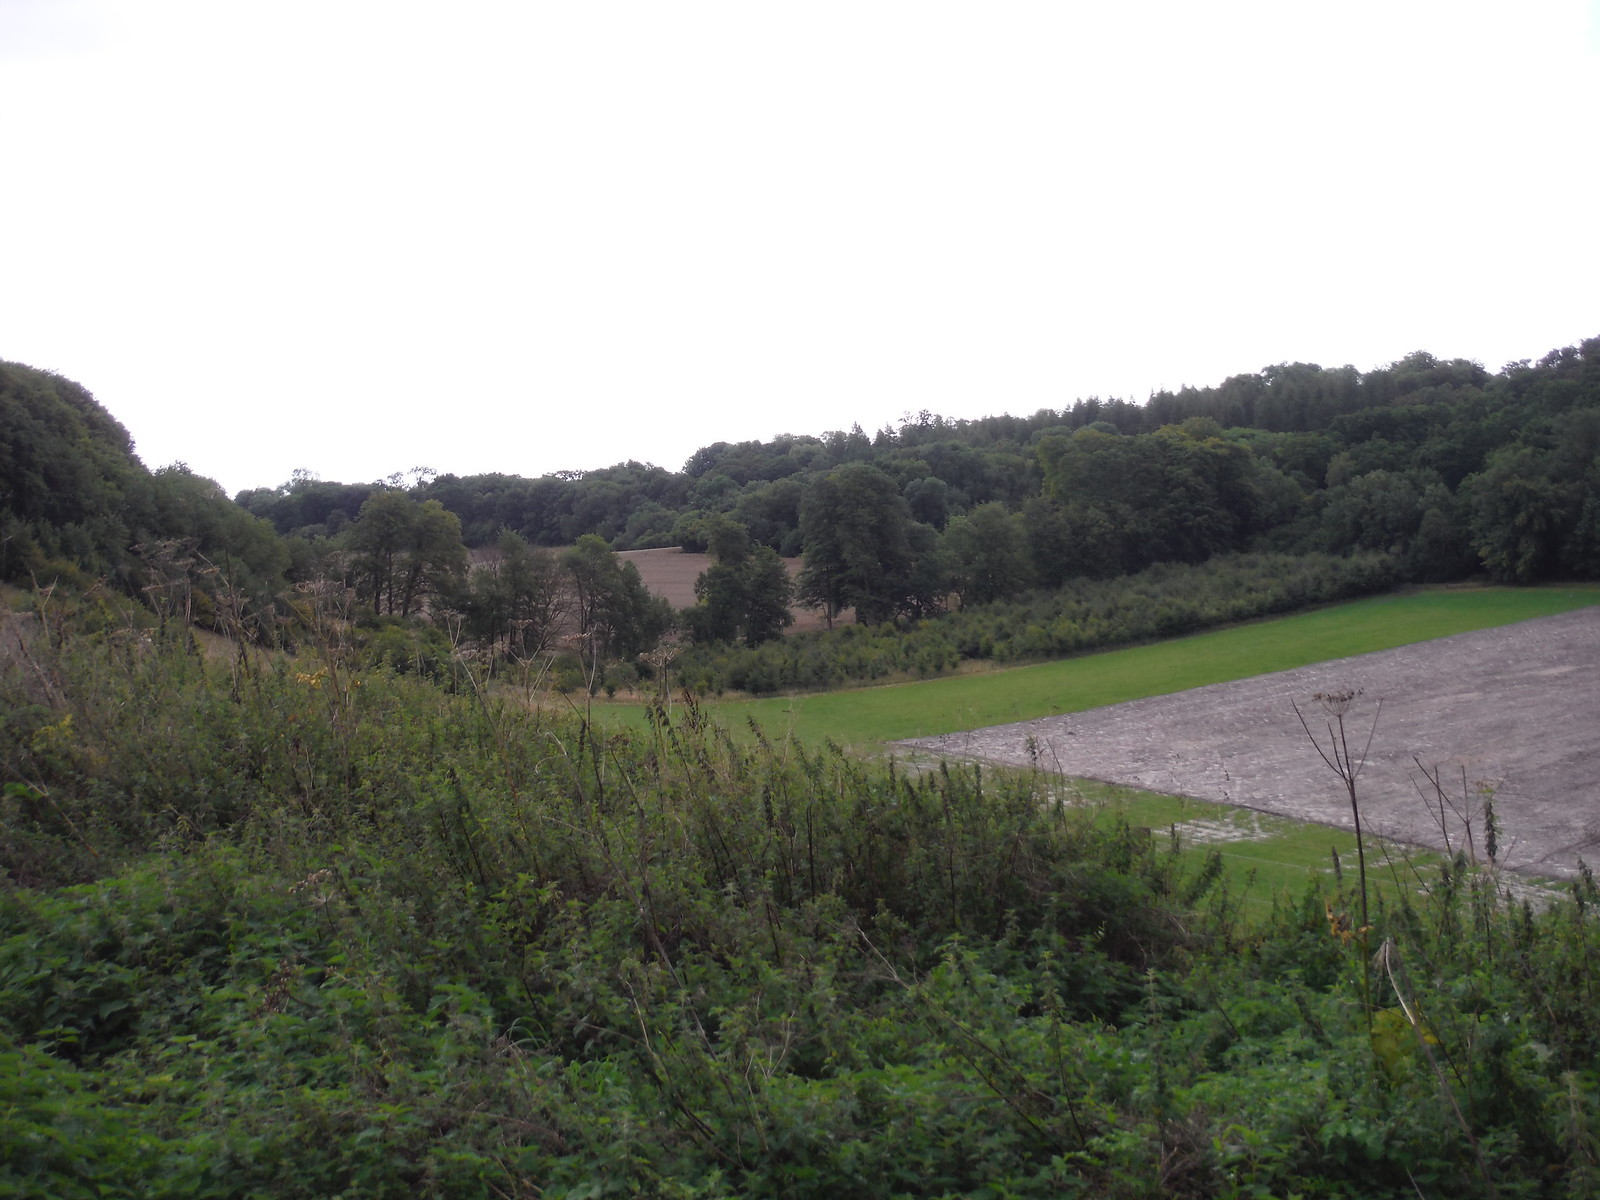 U-Shaped Valley (with dredged silt from Fonthill Lake) SWC Walk 248 Tisbury Circular via Hindon